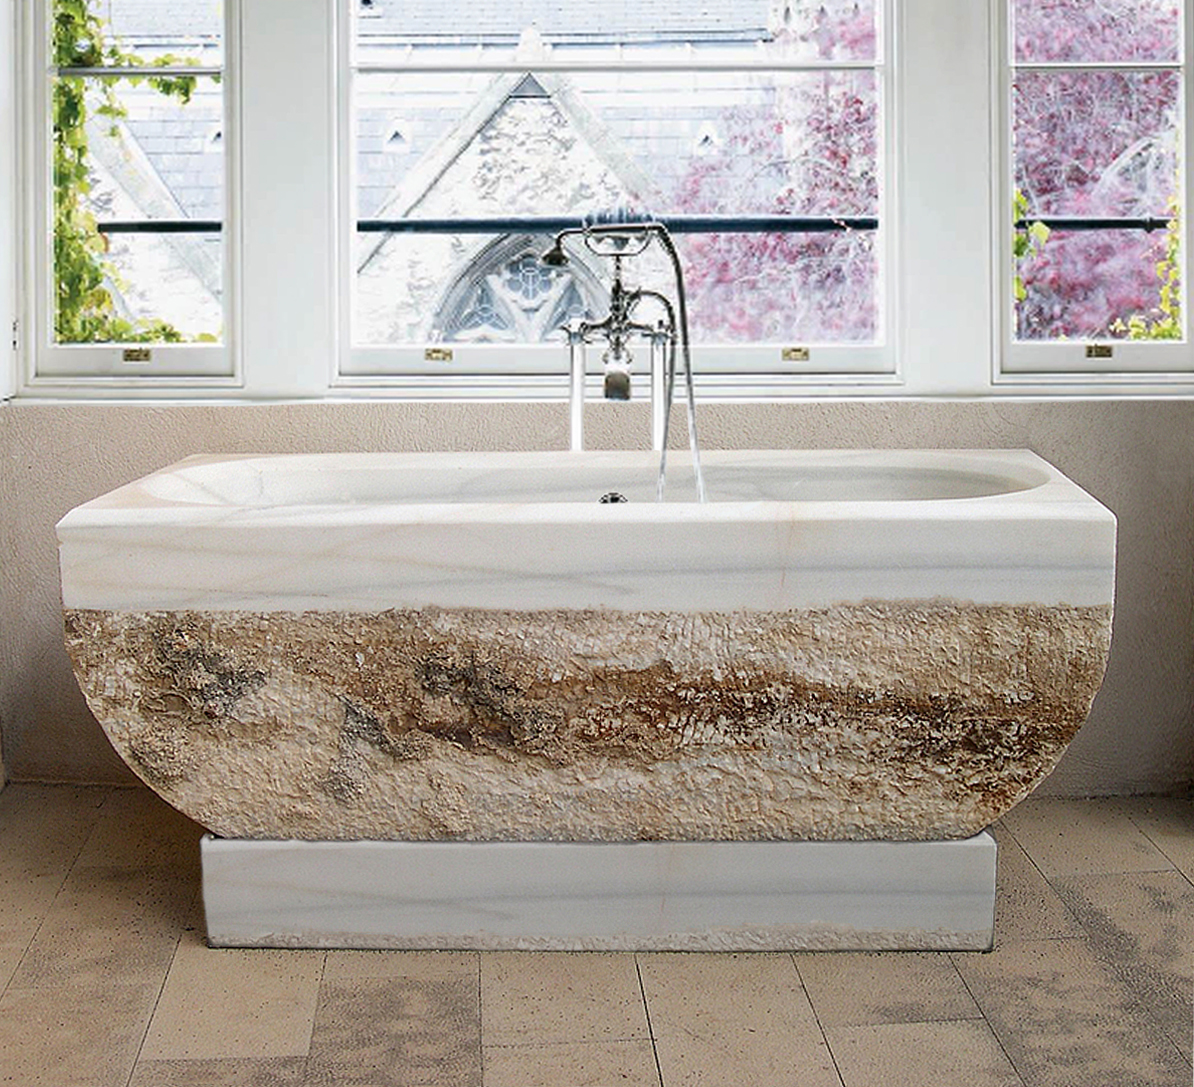 stone in trend bathtub bath bathtubs reasons will shower and why be